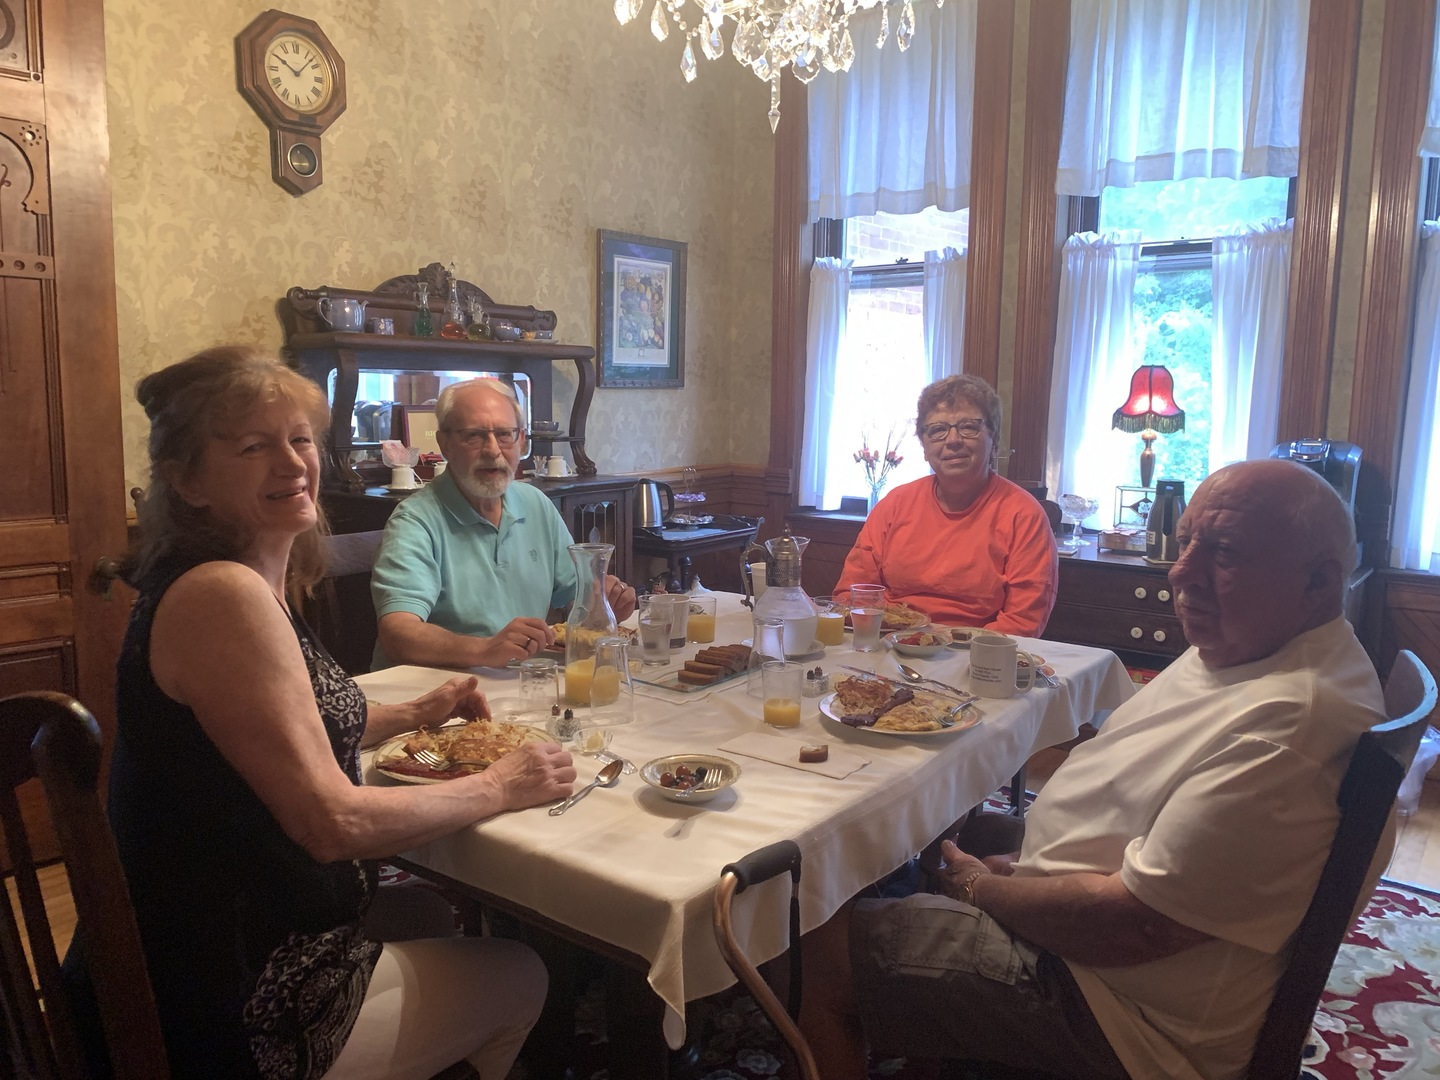 A group of people sitting at a table eating food at The Grand Kerr House.